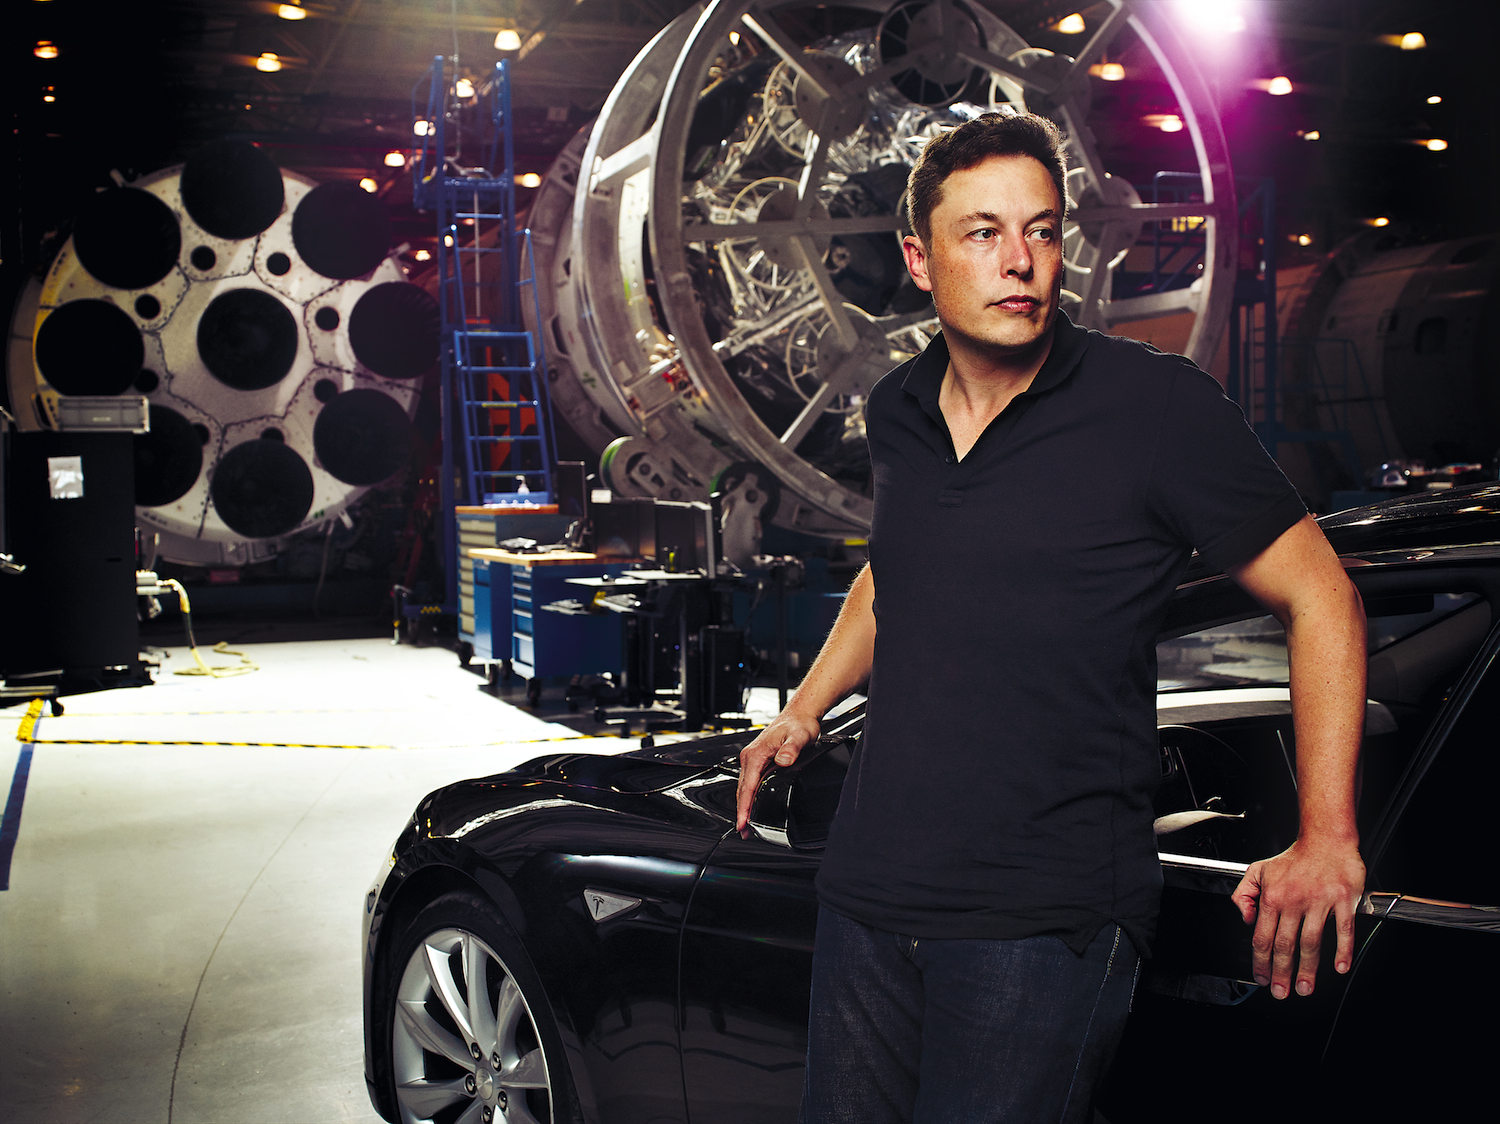 Best Games Ever, According to Elon Musk